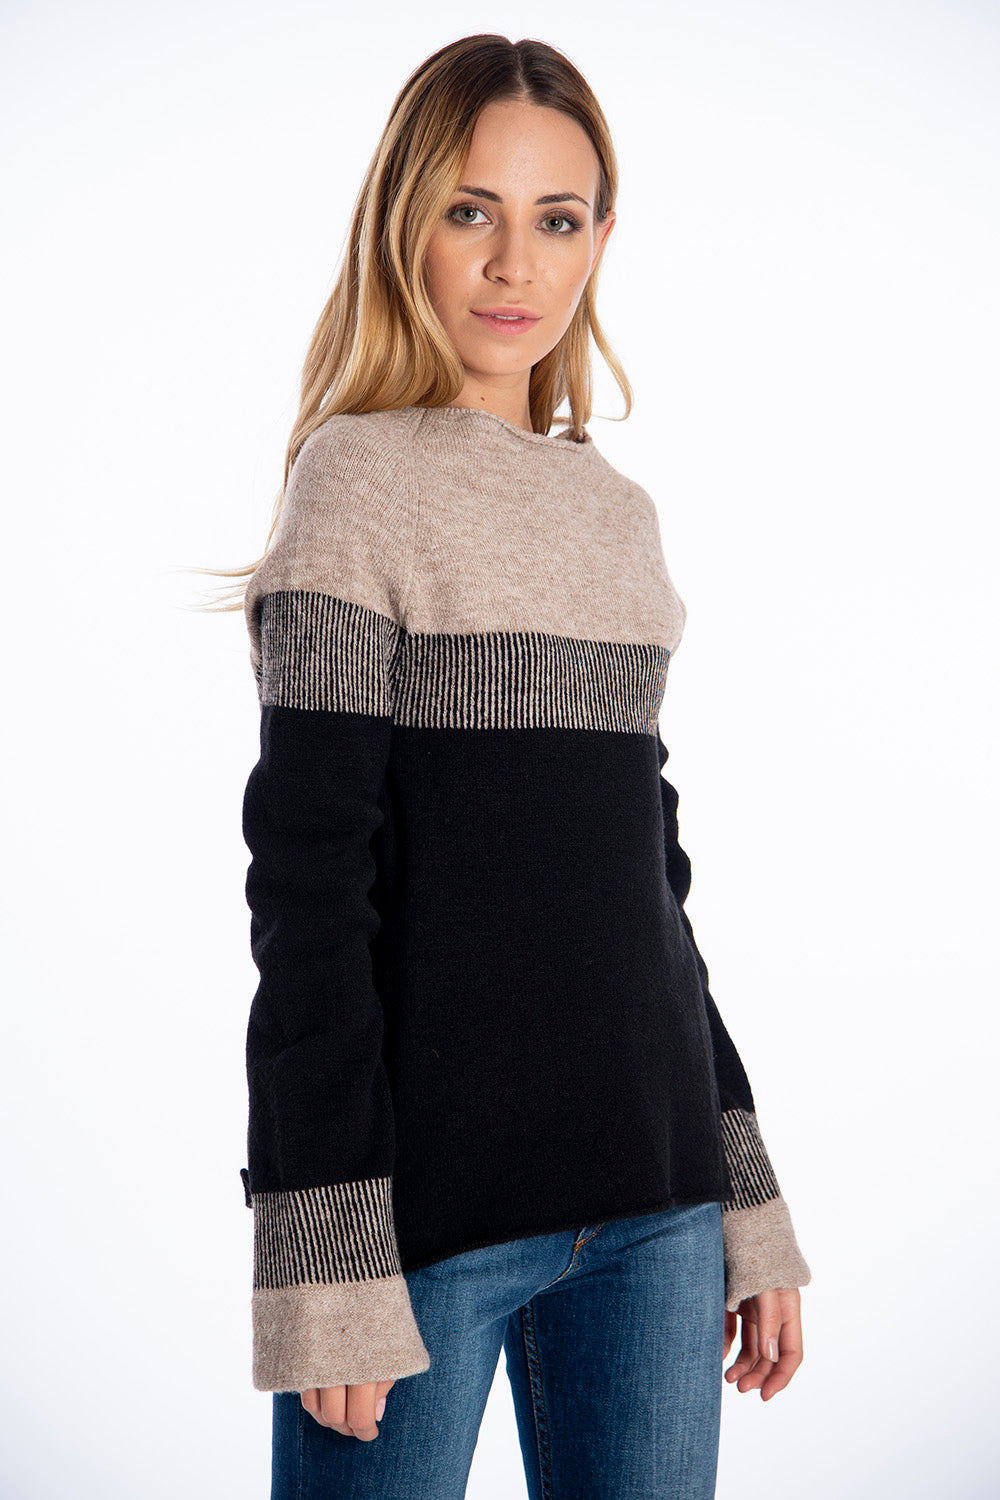 Infinity Knitwear boat neck jumper in natural colours